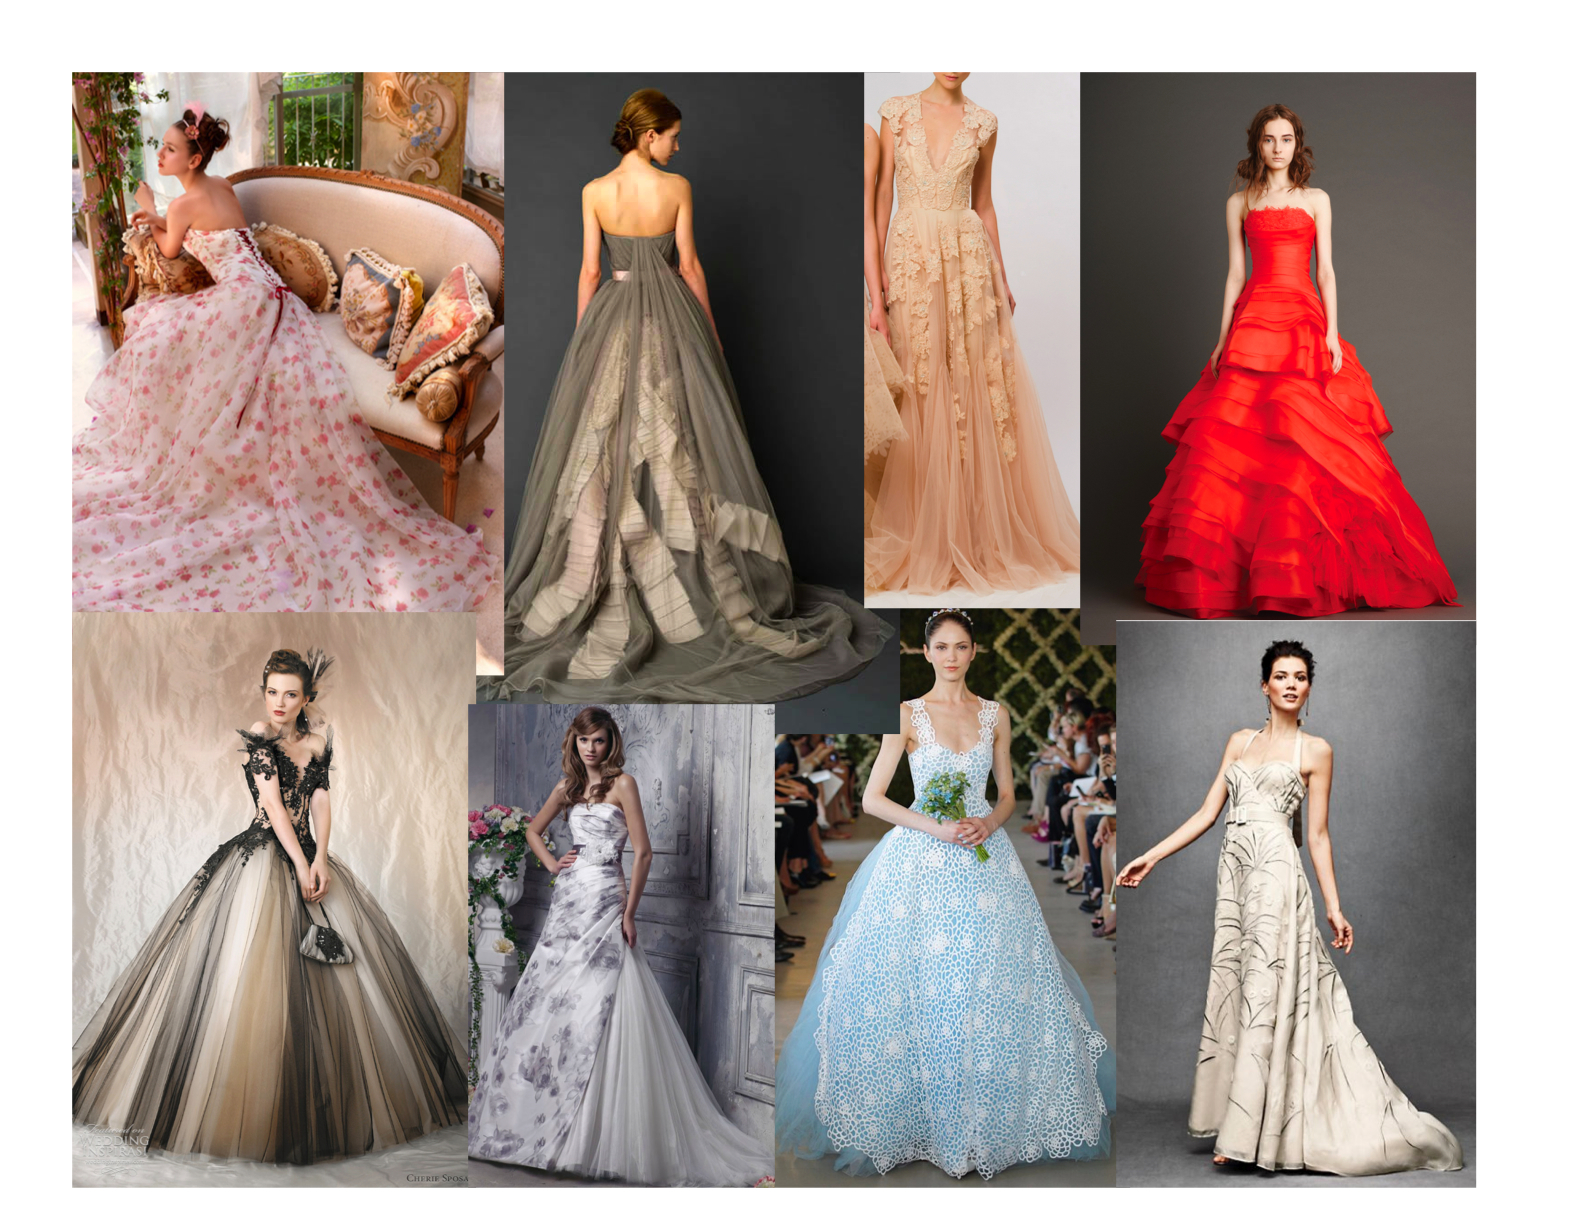 Wedding dresses different color wedding dress for Different colored wedding dresses